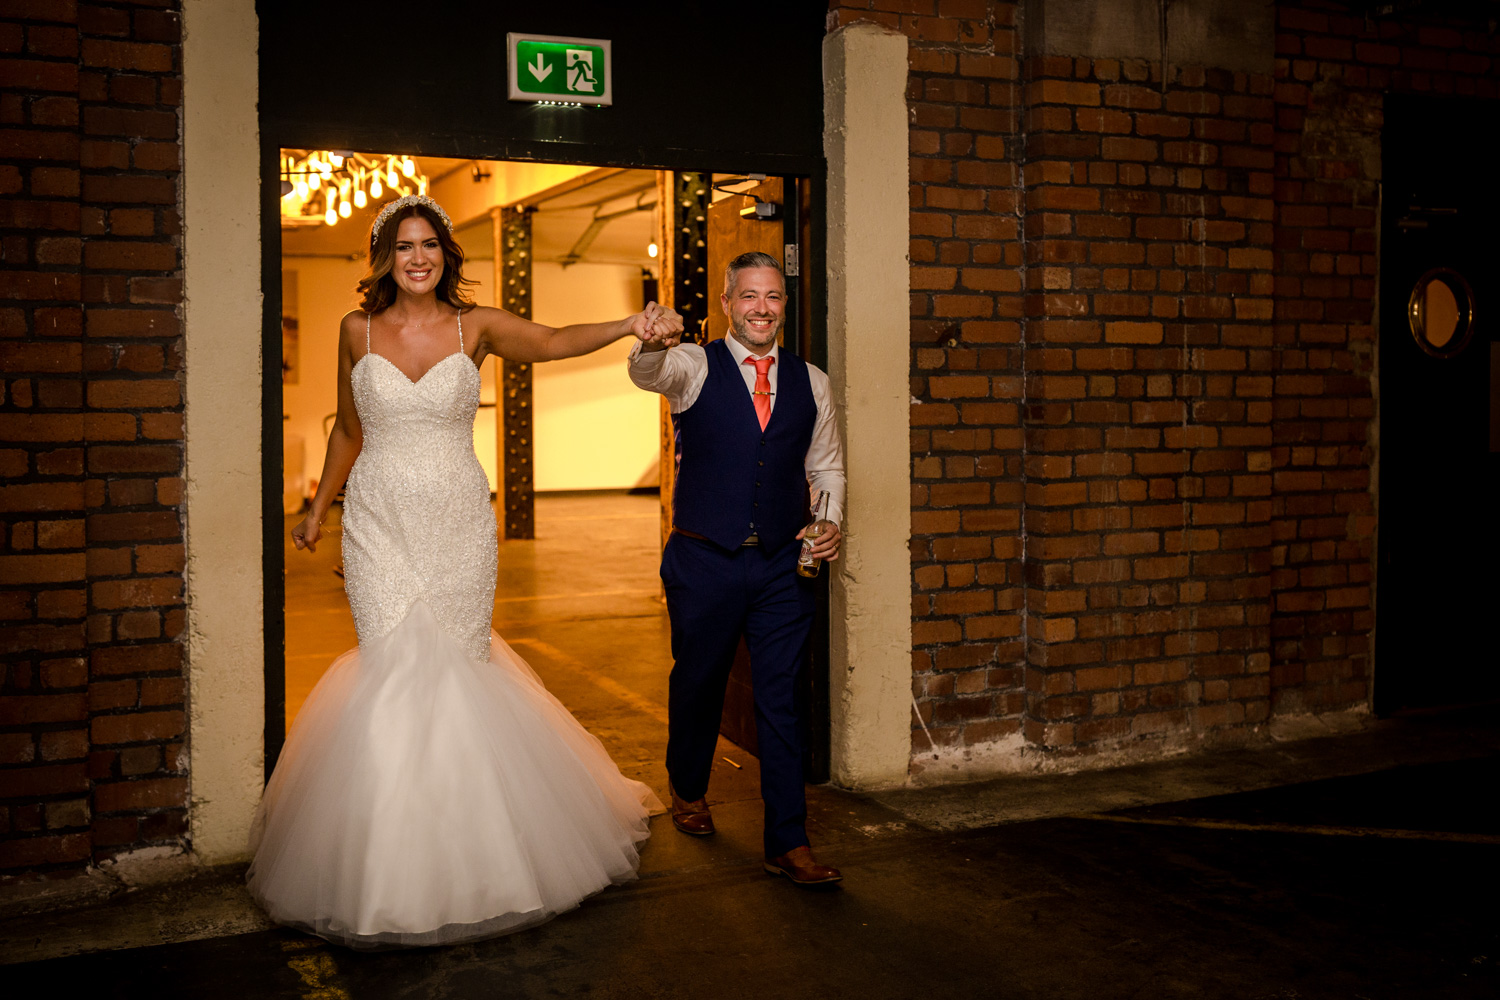 the bride and groom make their entrance at Victoria Warehouse